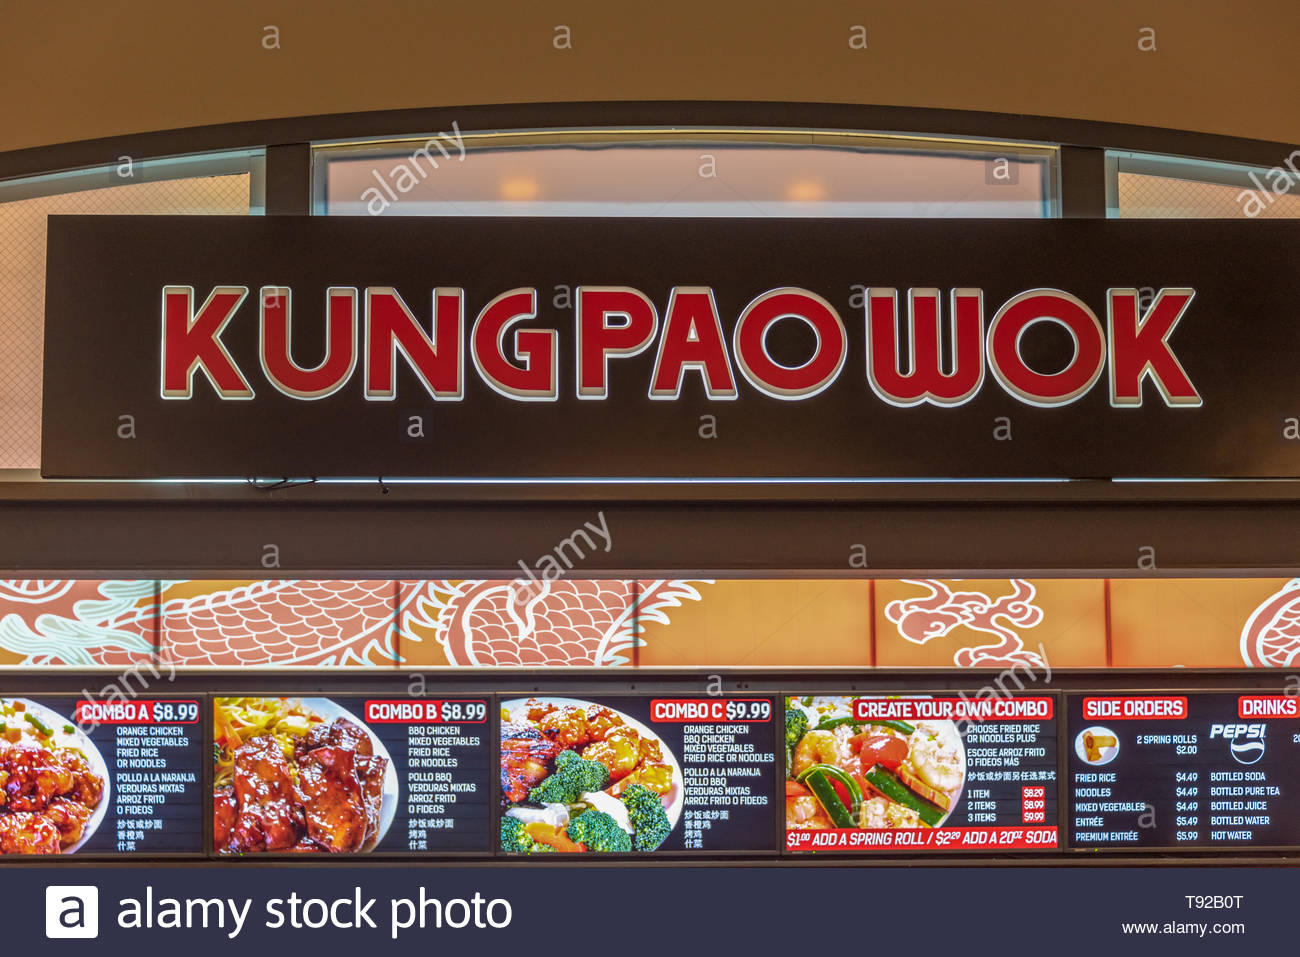 Kung Pao Wok Chinese Restaurant In New York Usa With Its